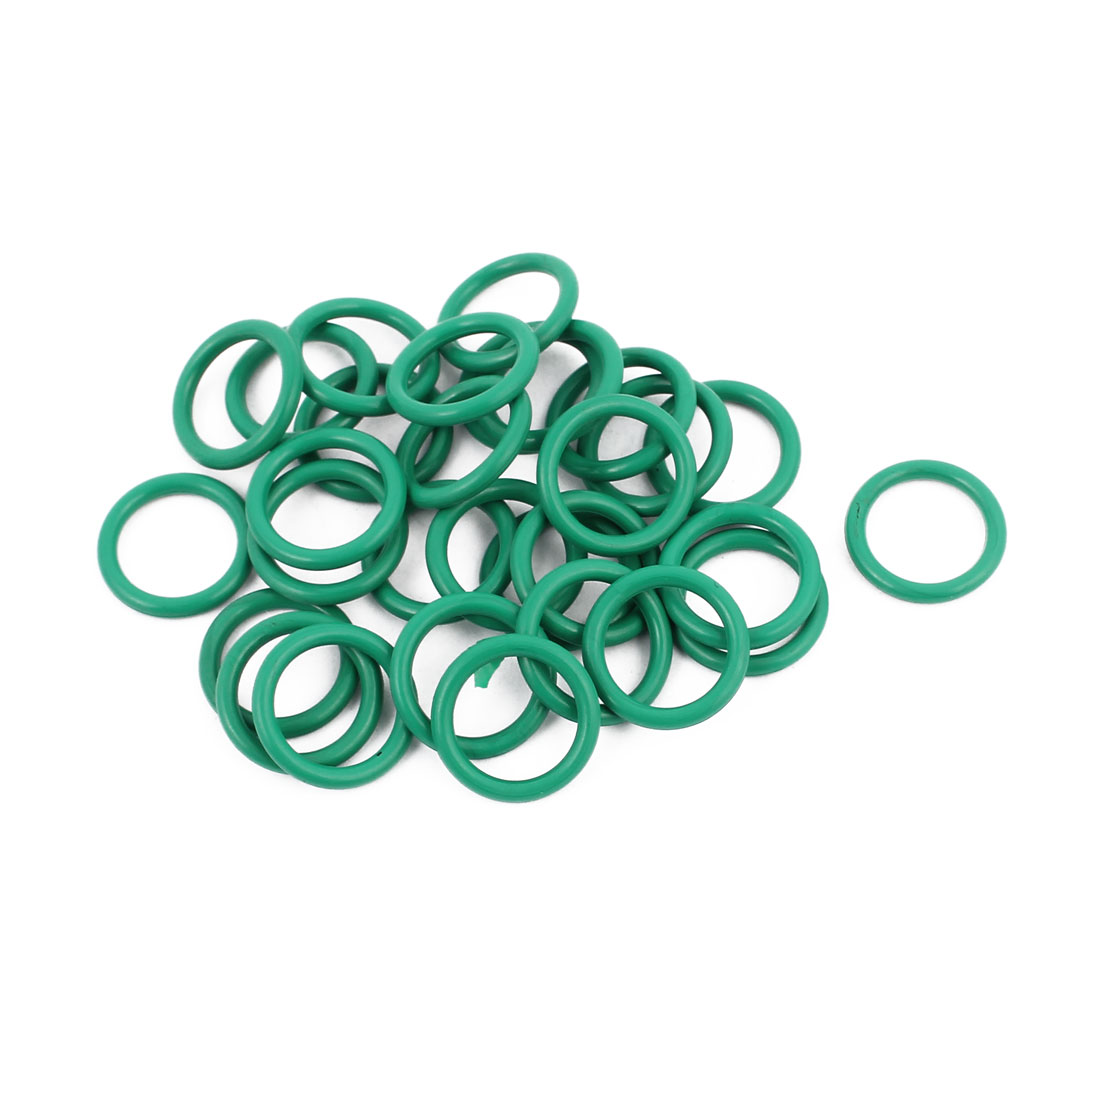 30Pcs 15mm x 1.9mm Rubber O-rings NBR Heat Resistant Sealing Ring Grommets Green